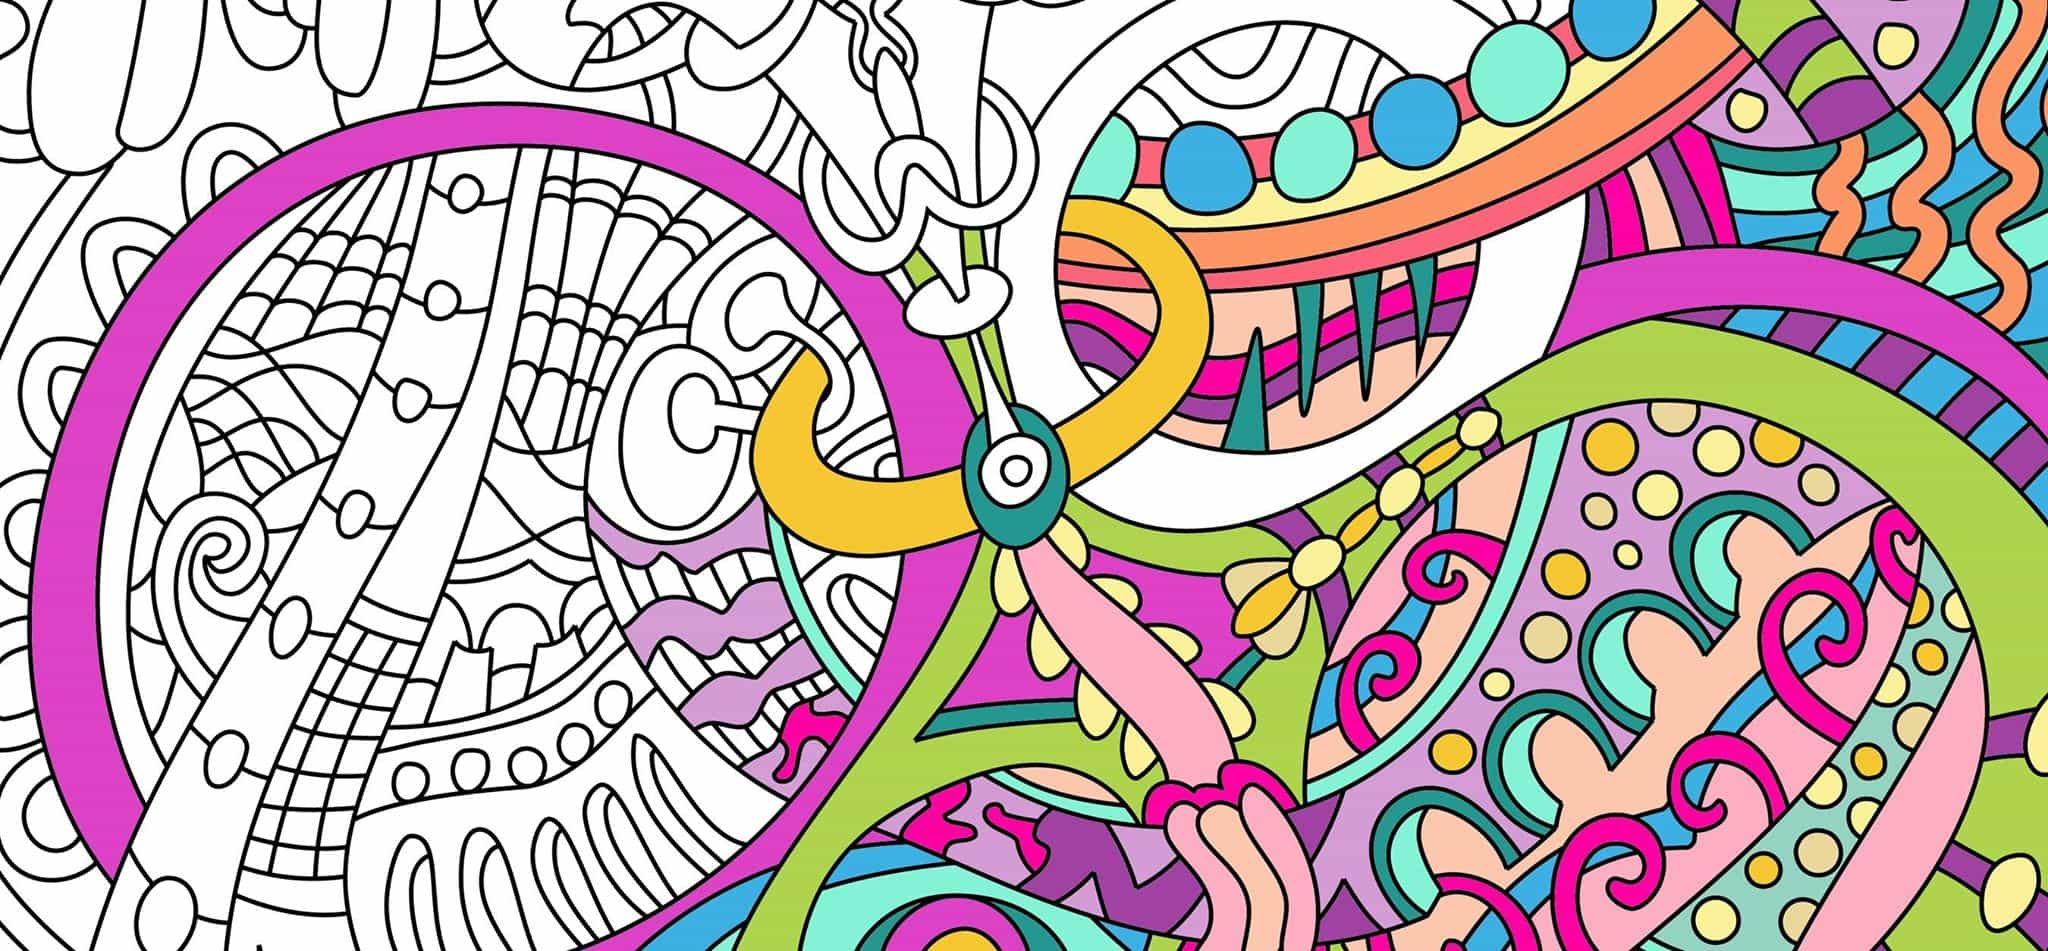 Colouring is Good for your Soul – Guest Blog Post by Angie Grace